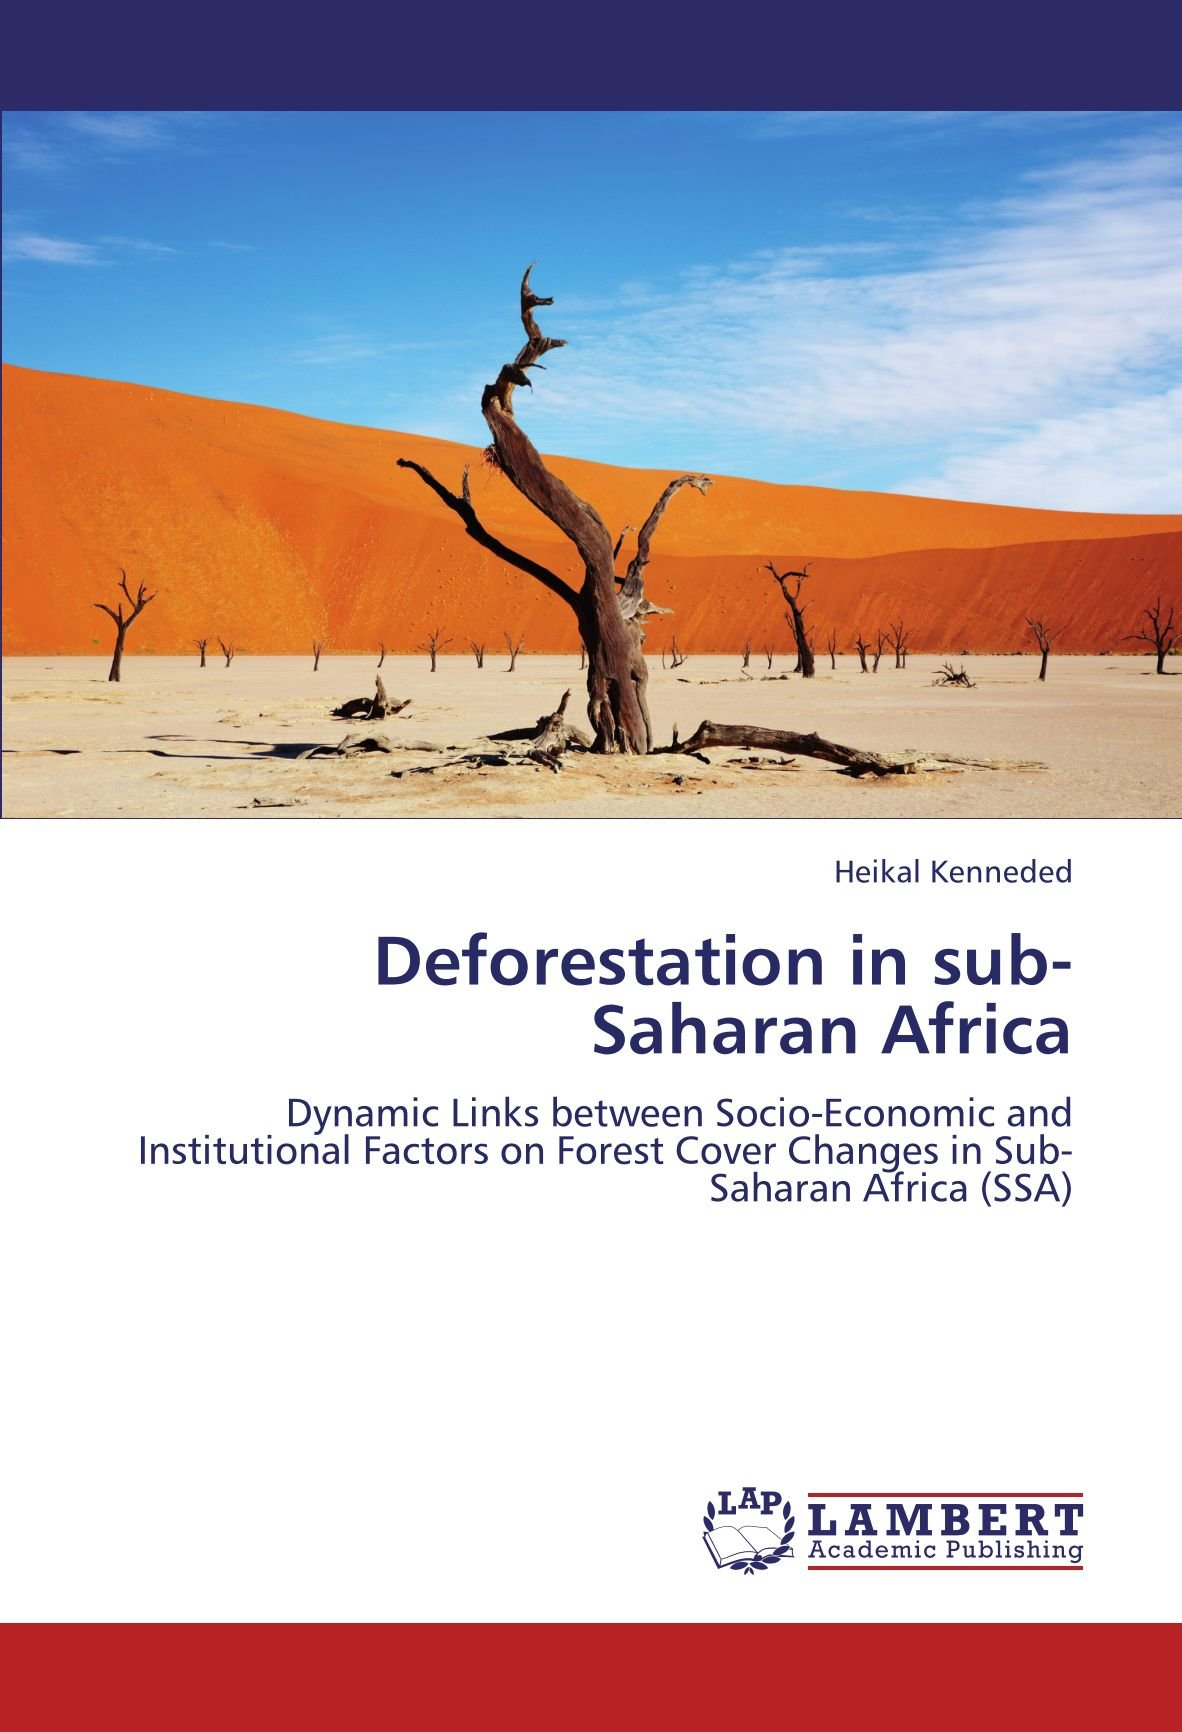 Download Deforestation in sub-Saharan Africa: Dynamic Links between Socio-Economic and Institutional Factors on Forest Cover Changes in Sub-Saharan Africa (SSA) PDF